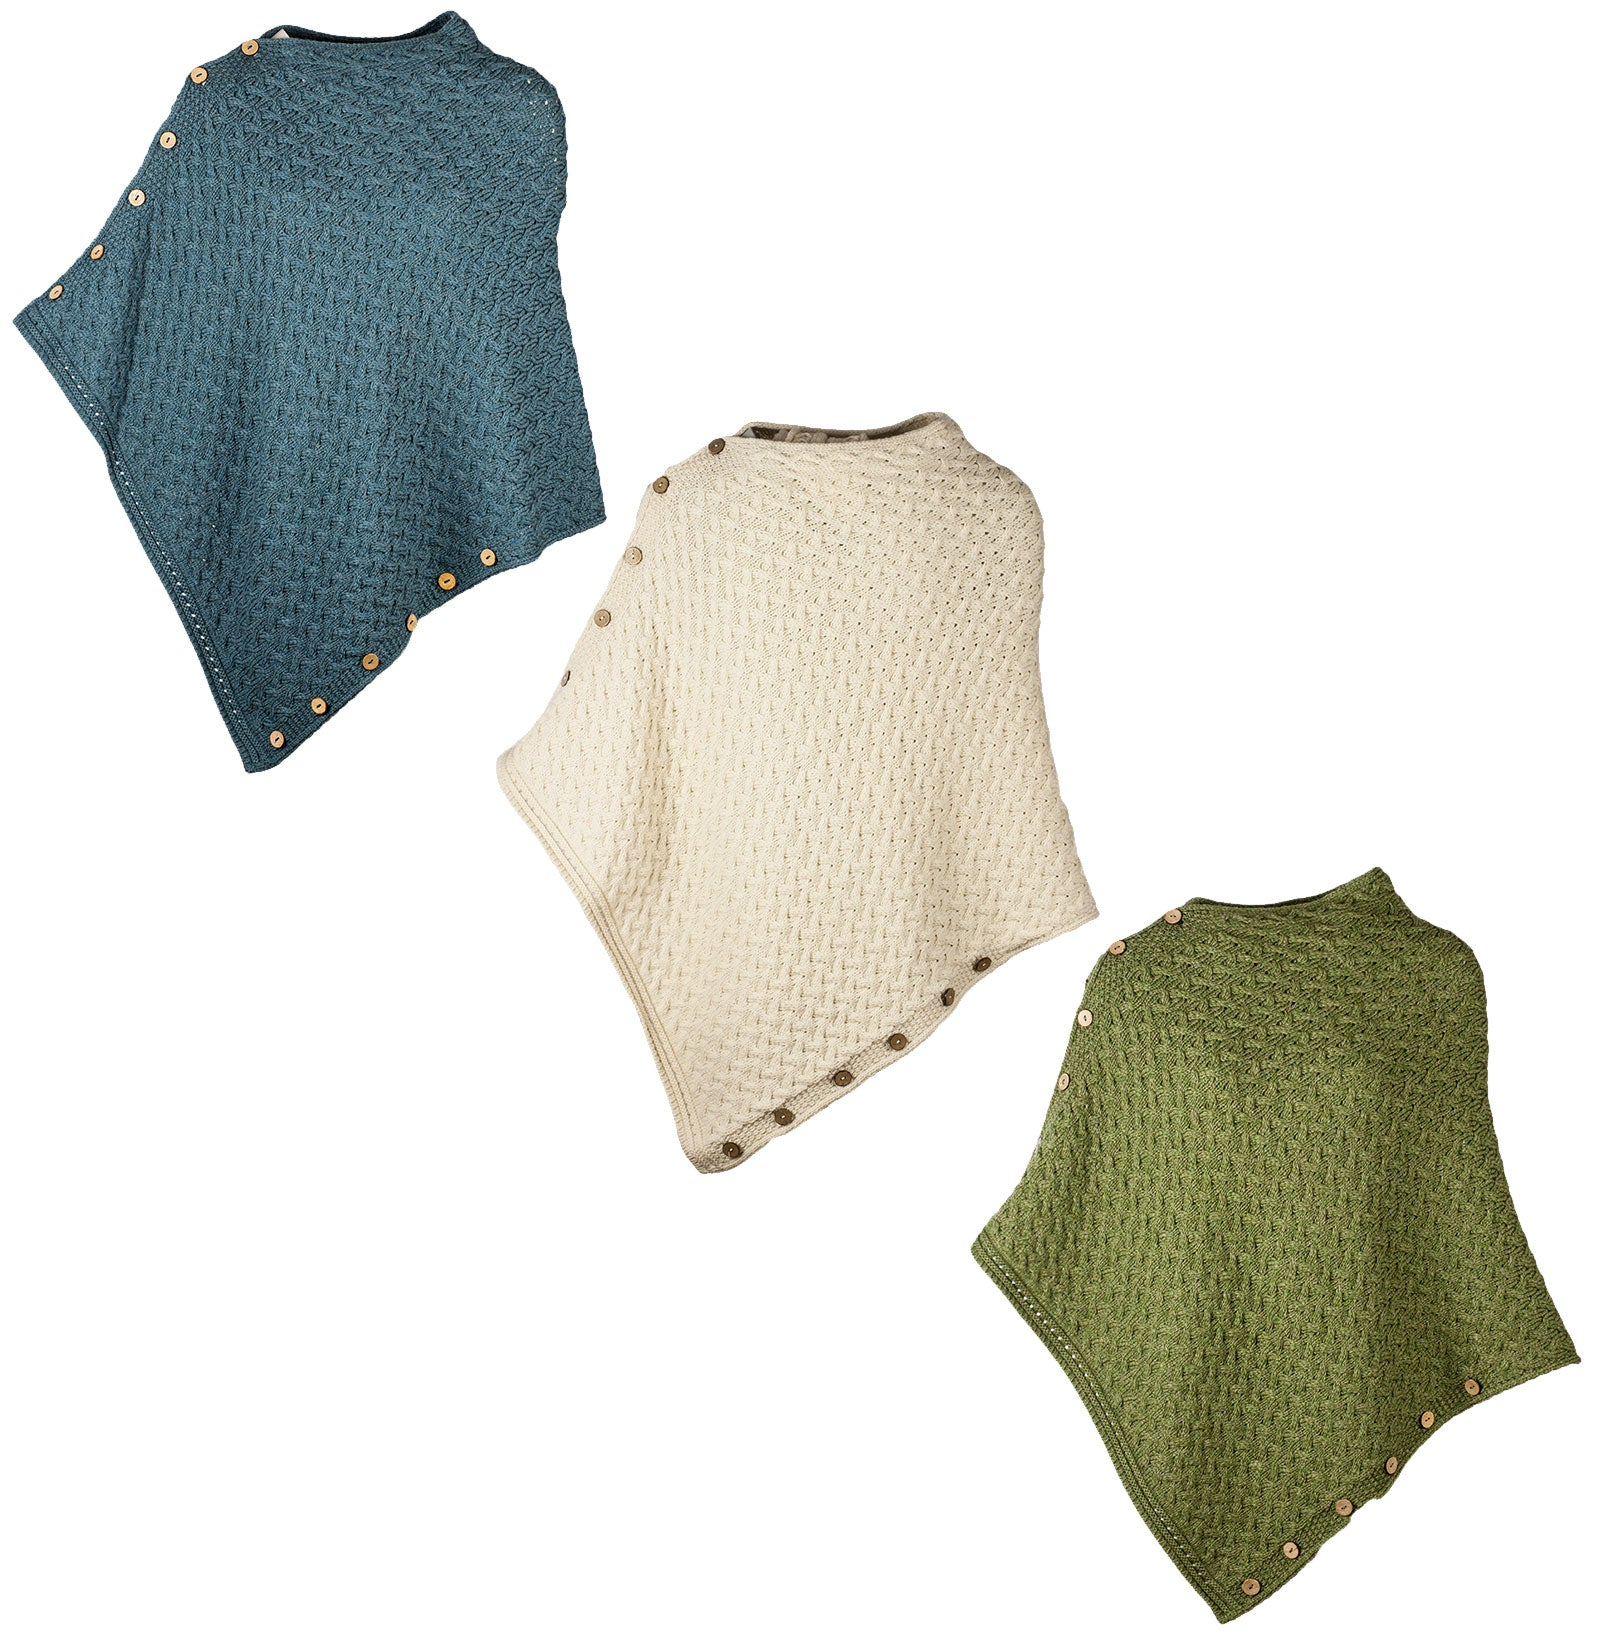 95c08a3522a Aran Merino Wool Knit Button Poncho – Hollands Country Clothing